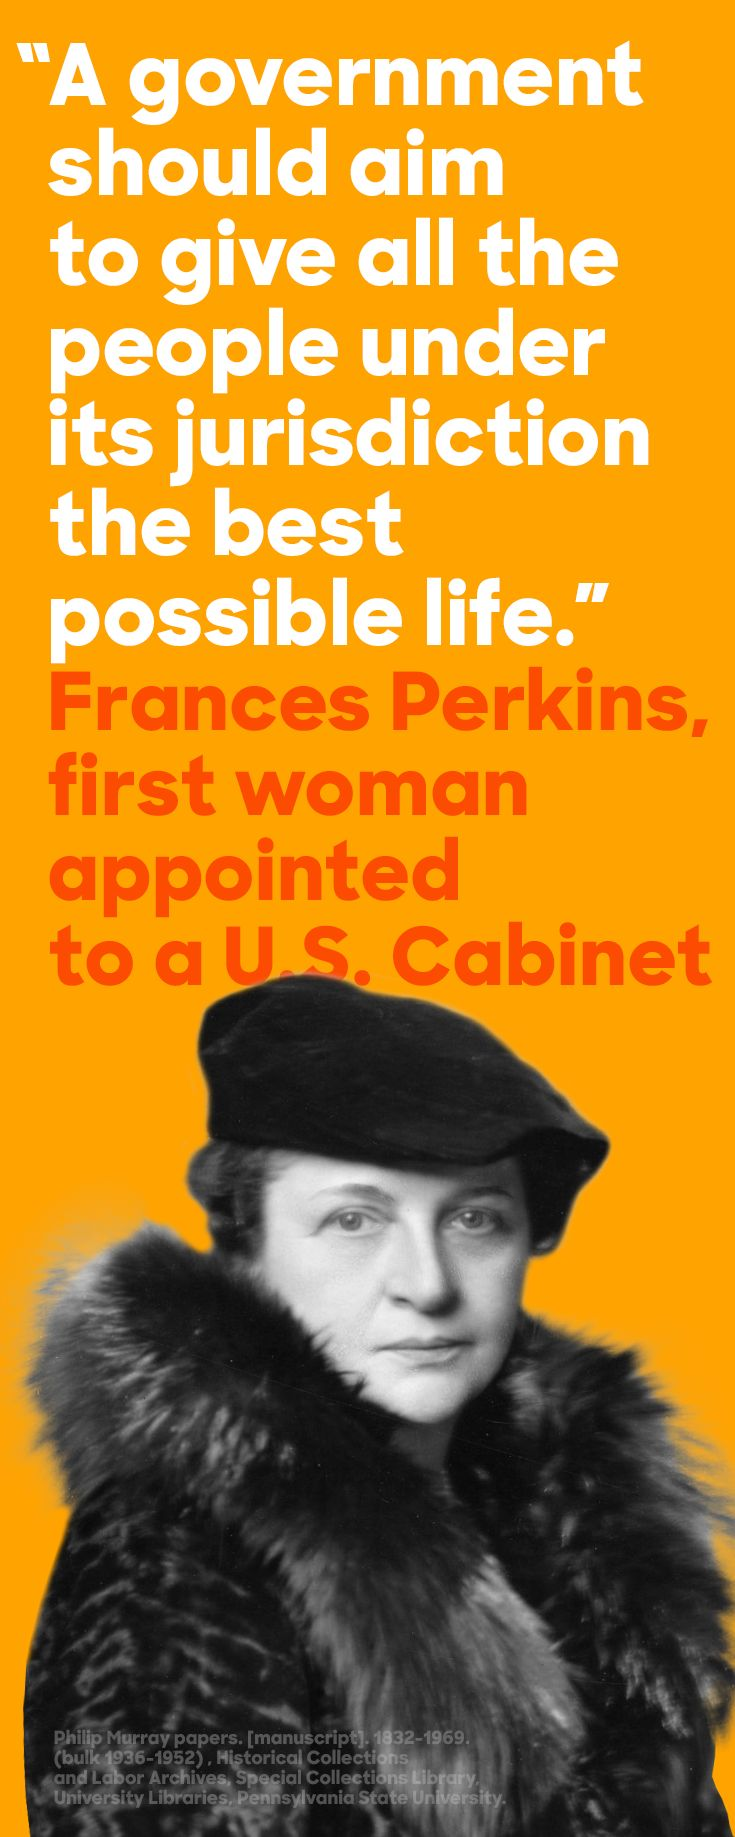 On March 4, 1933, the U.S. Senate confirmed Frances Perkins as Secretary of Labor, making her the first woman cabinet member. With President Franklin Delano Roosevelt, Secretary Perkins crafted the blueprint for the New Deal and the Fair Labor Standards Act, which abolished child labor. #WomensHistoryMonth